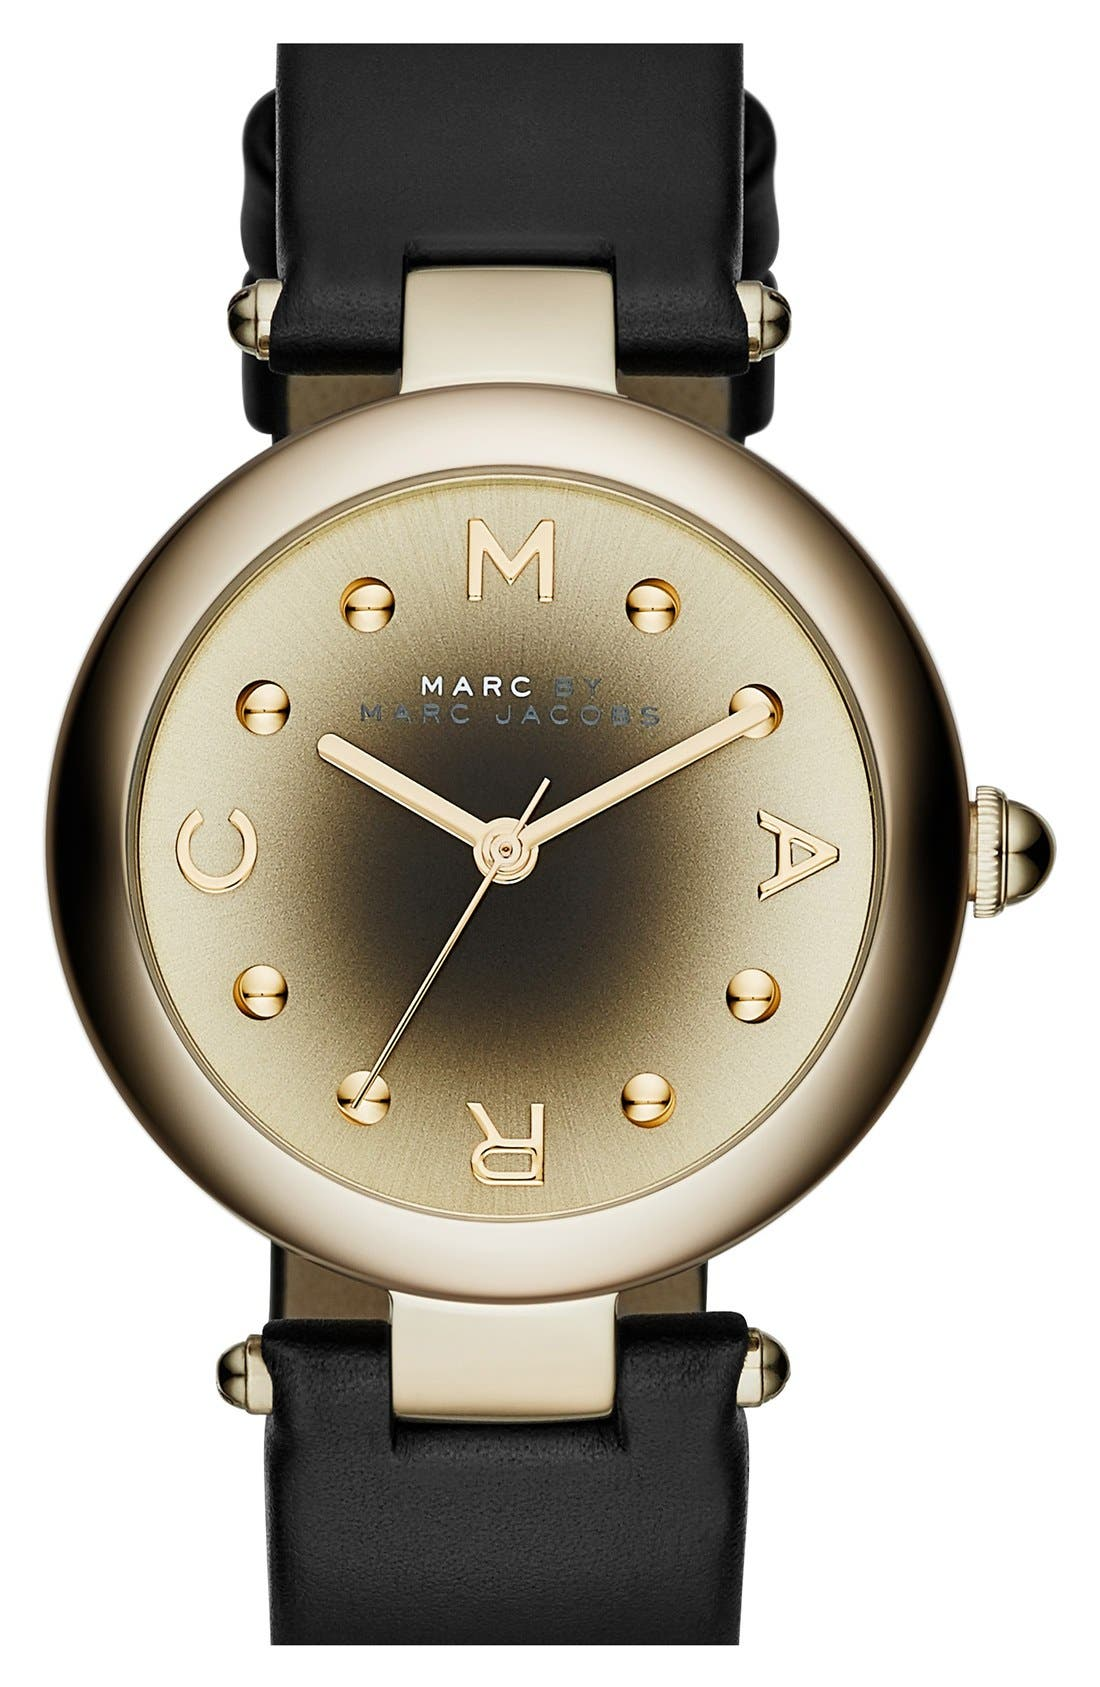 MARC JACOBS 'Dotty' Leather Strap Watch, 34mm, Main, color, 001